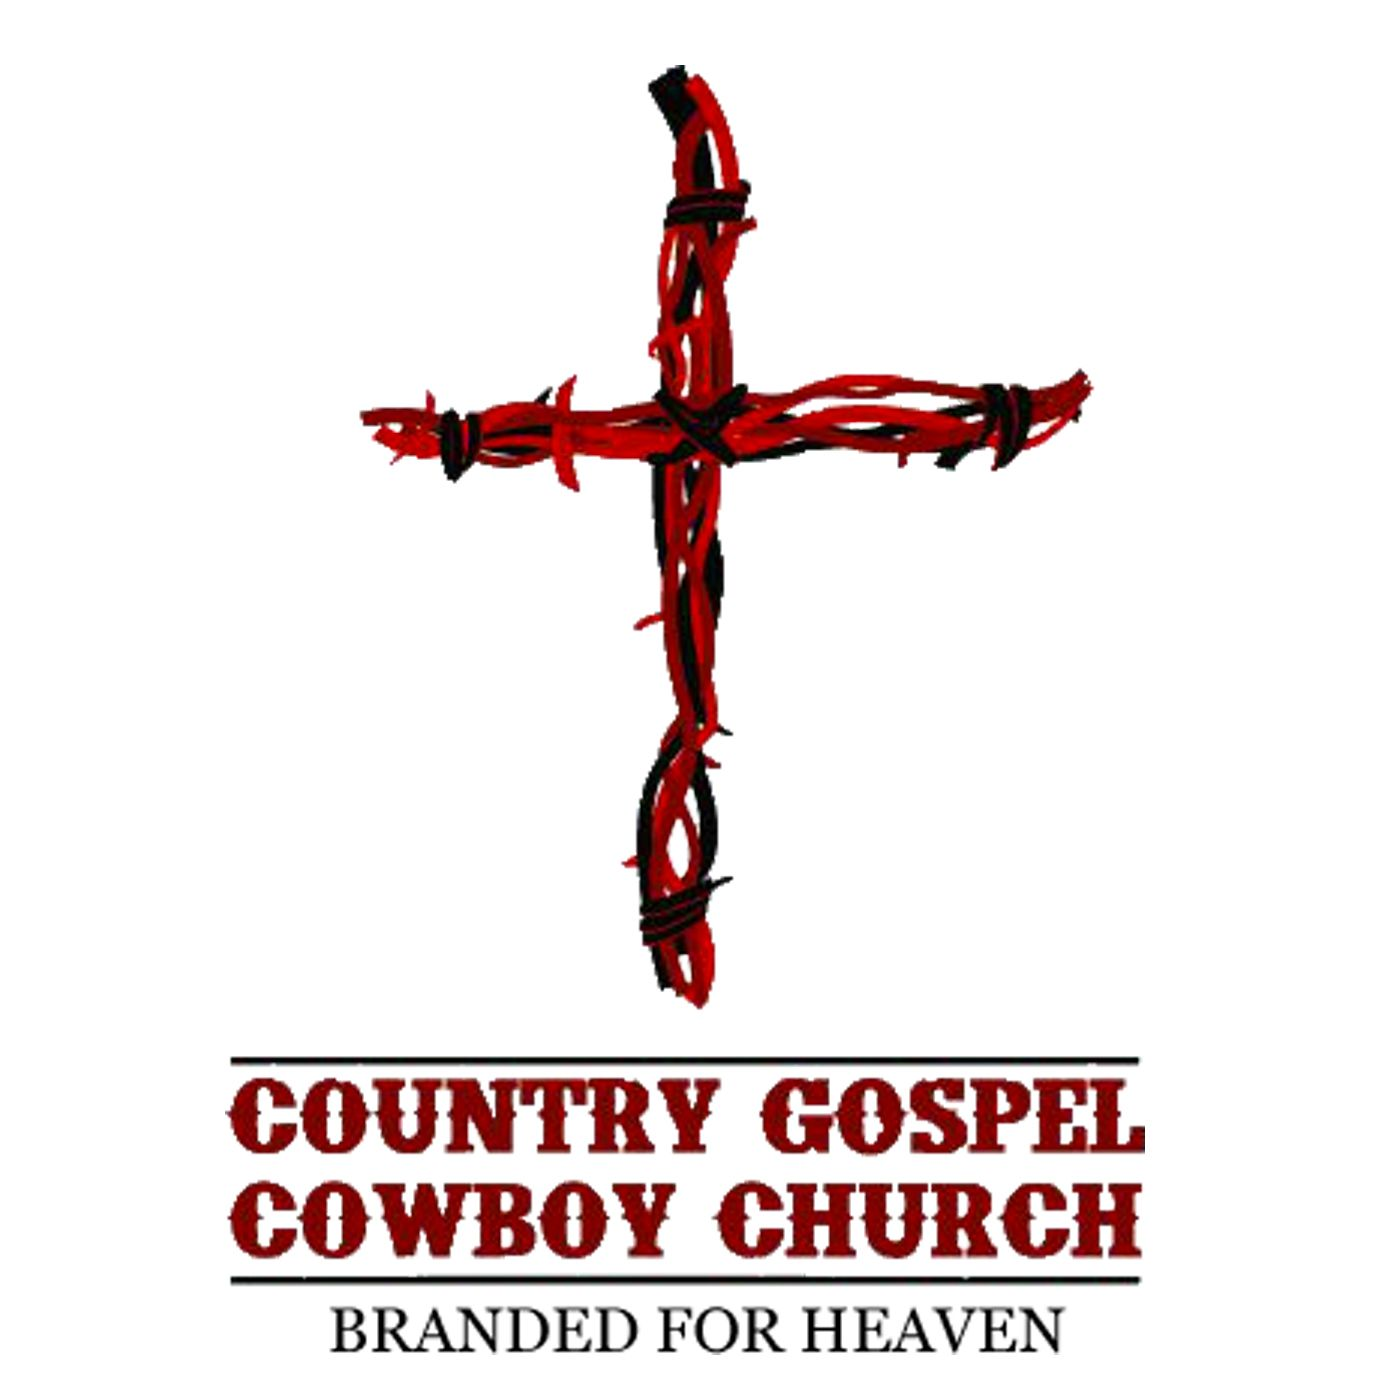 Country Gospel Cowboy Church